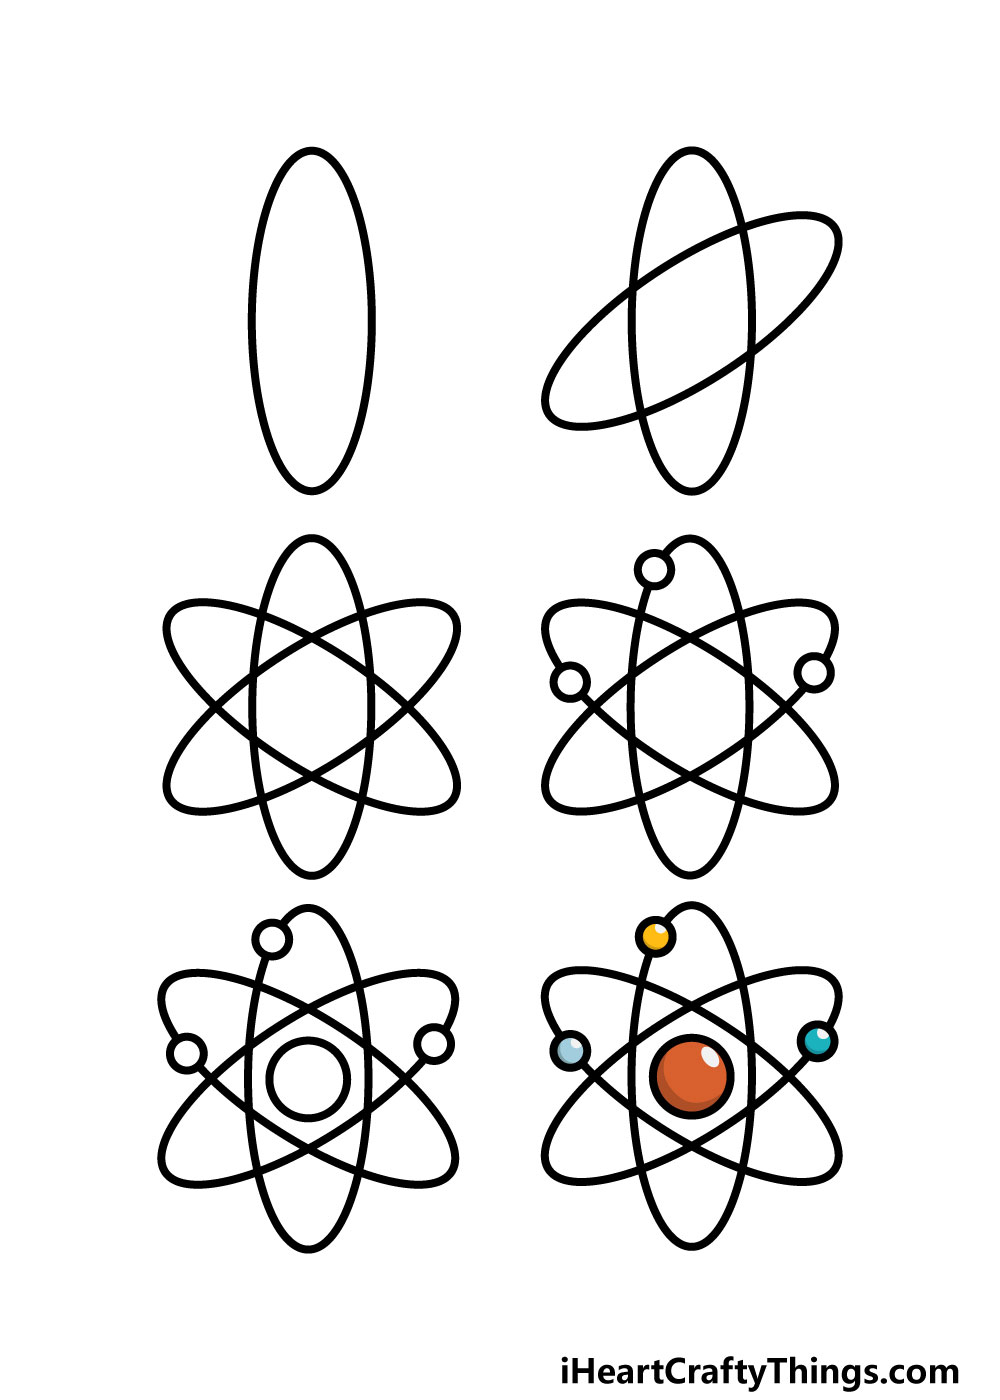 how to draw an atom in 6 steps